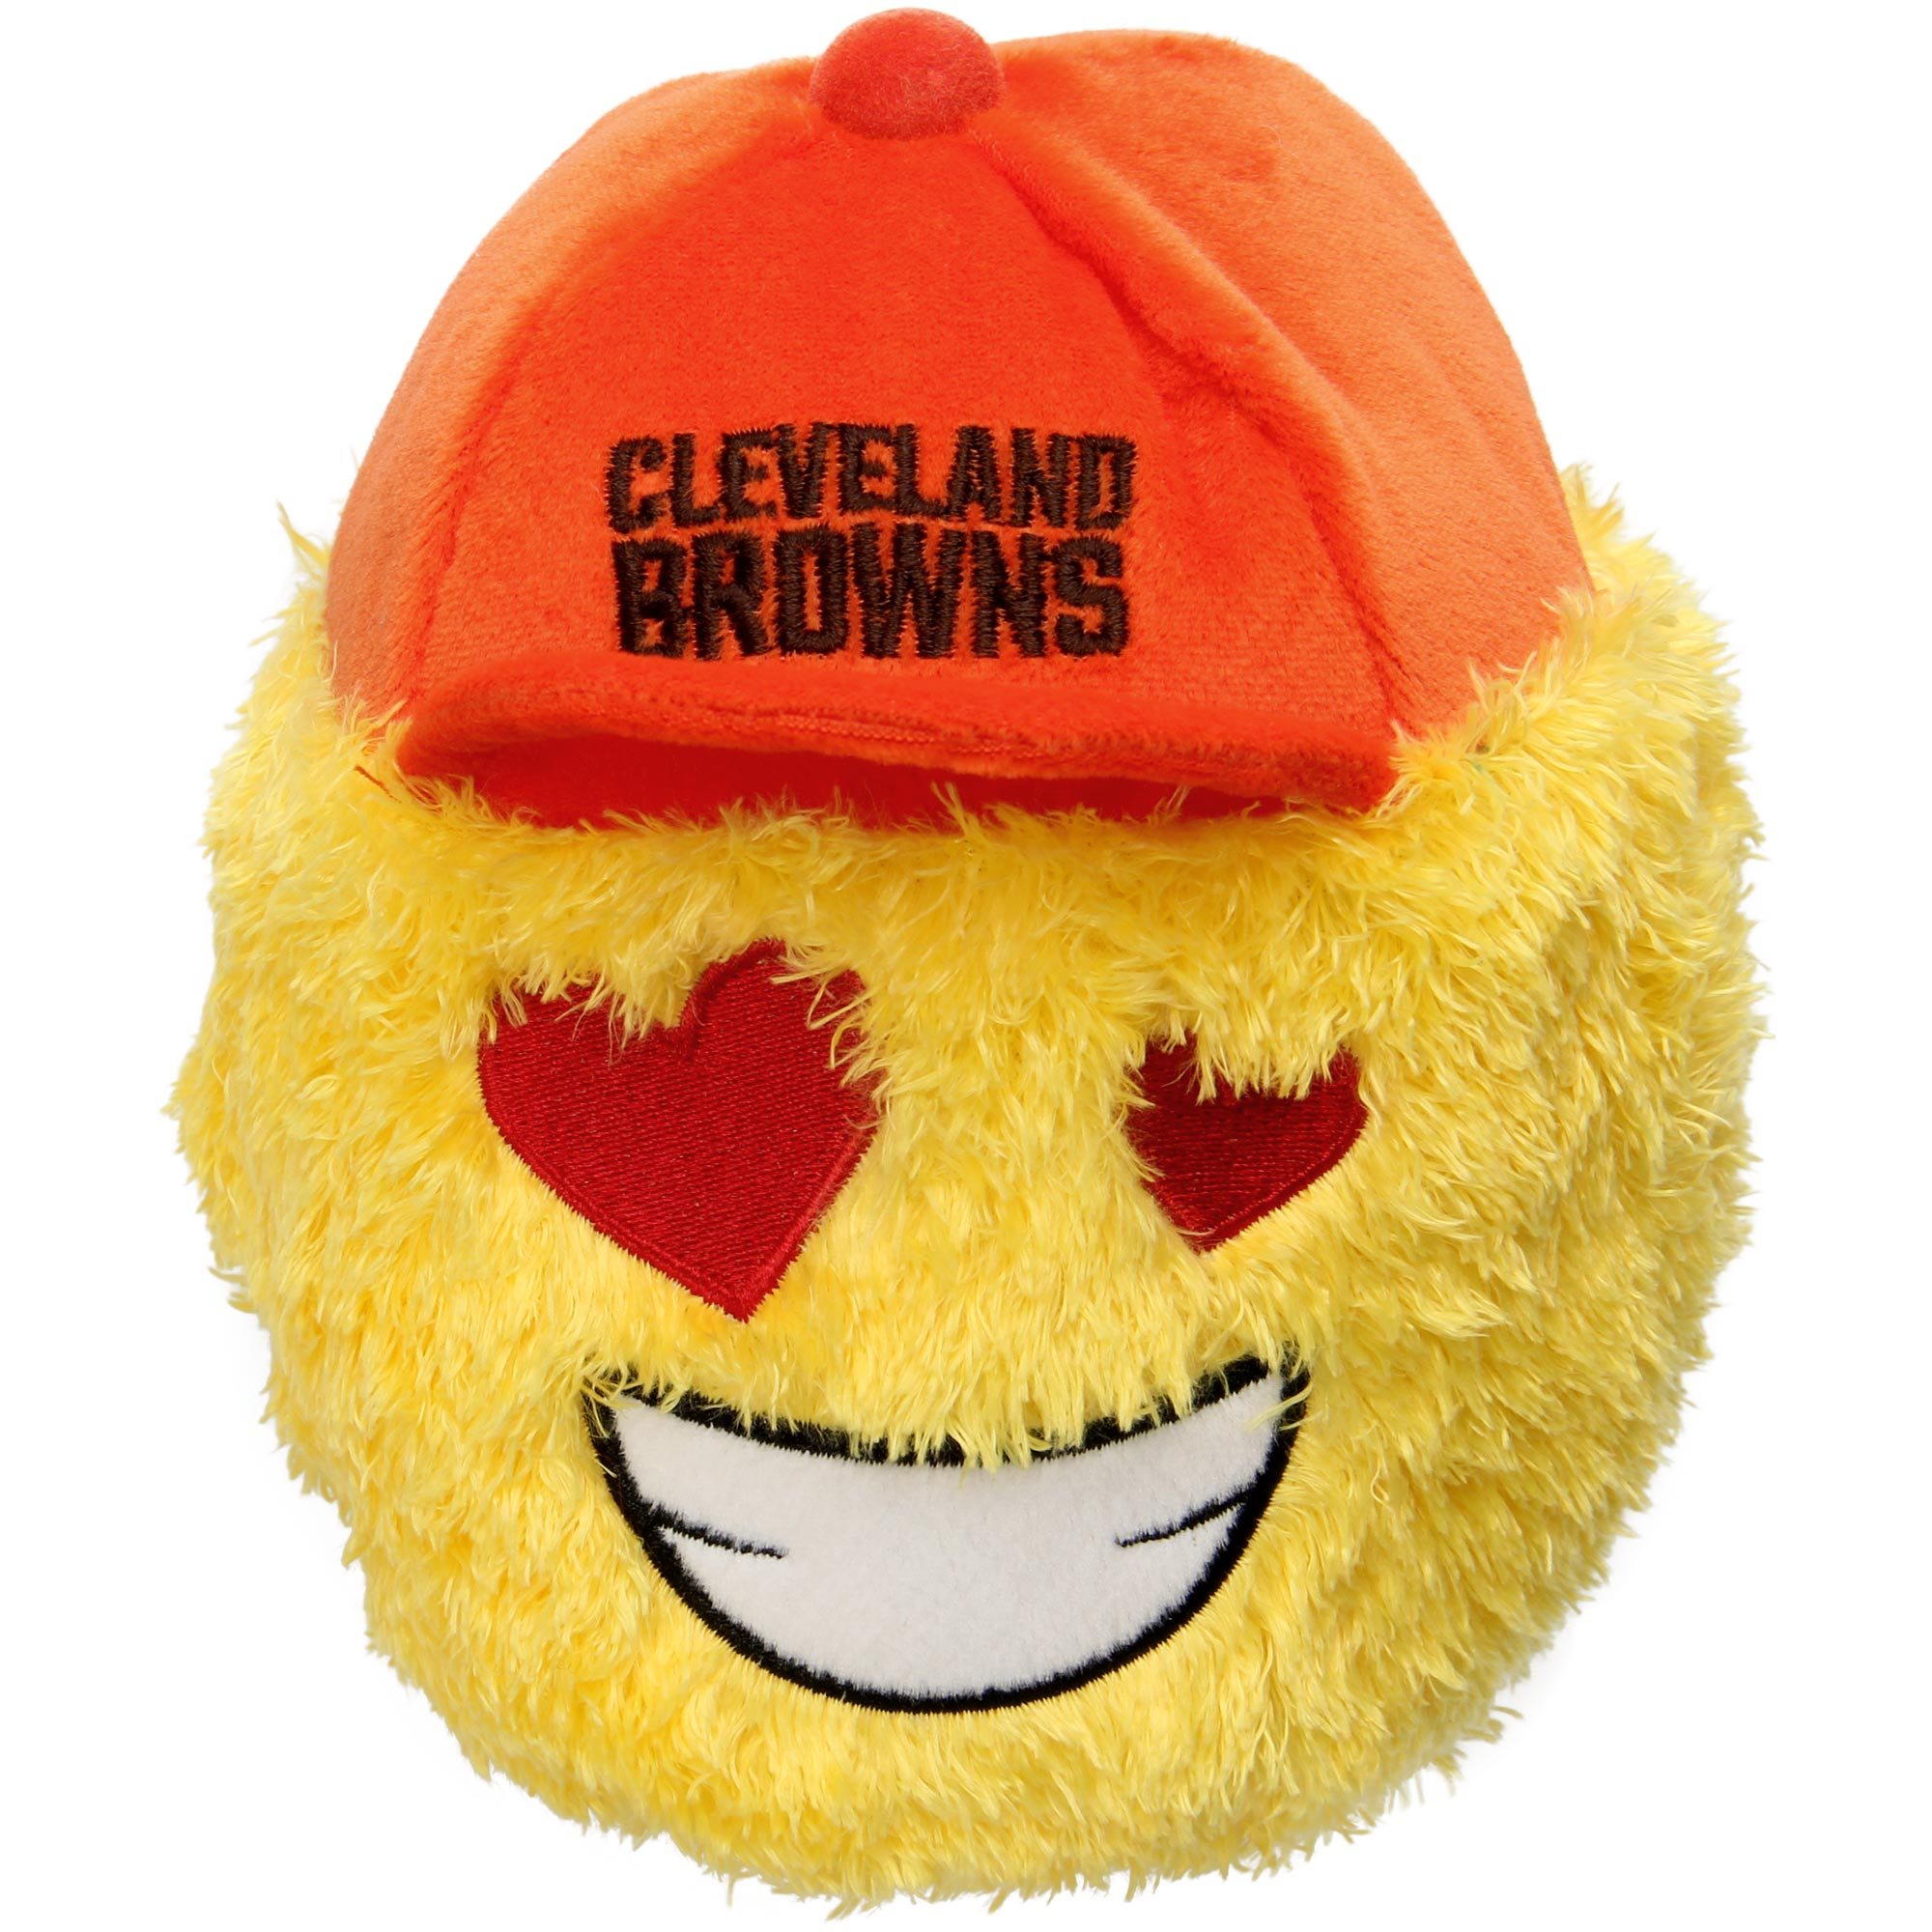 "Cleveland Browns 5"" Heart Eyes Teamoji Plush Toy"